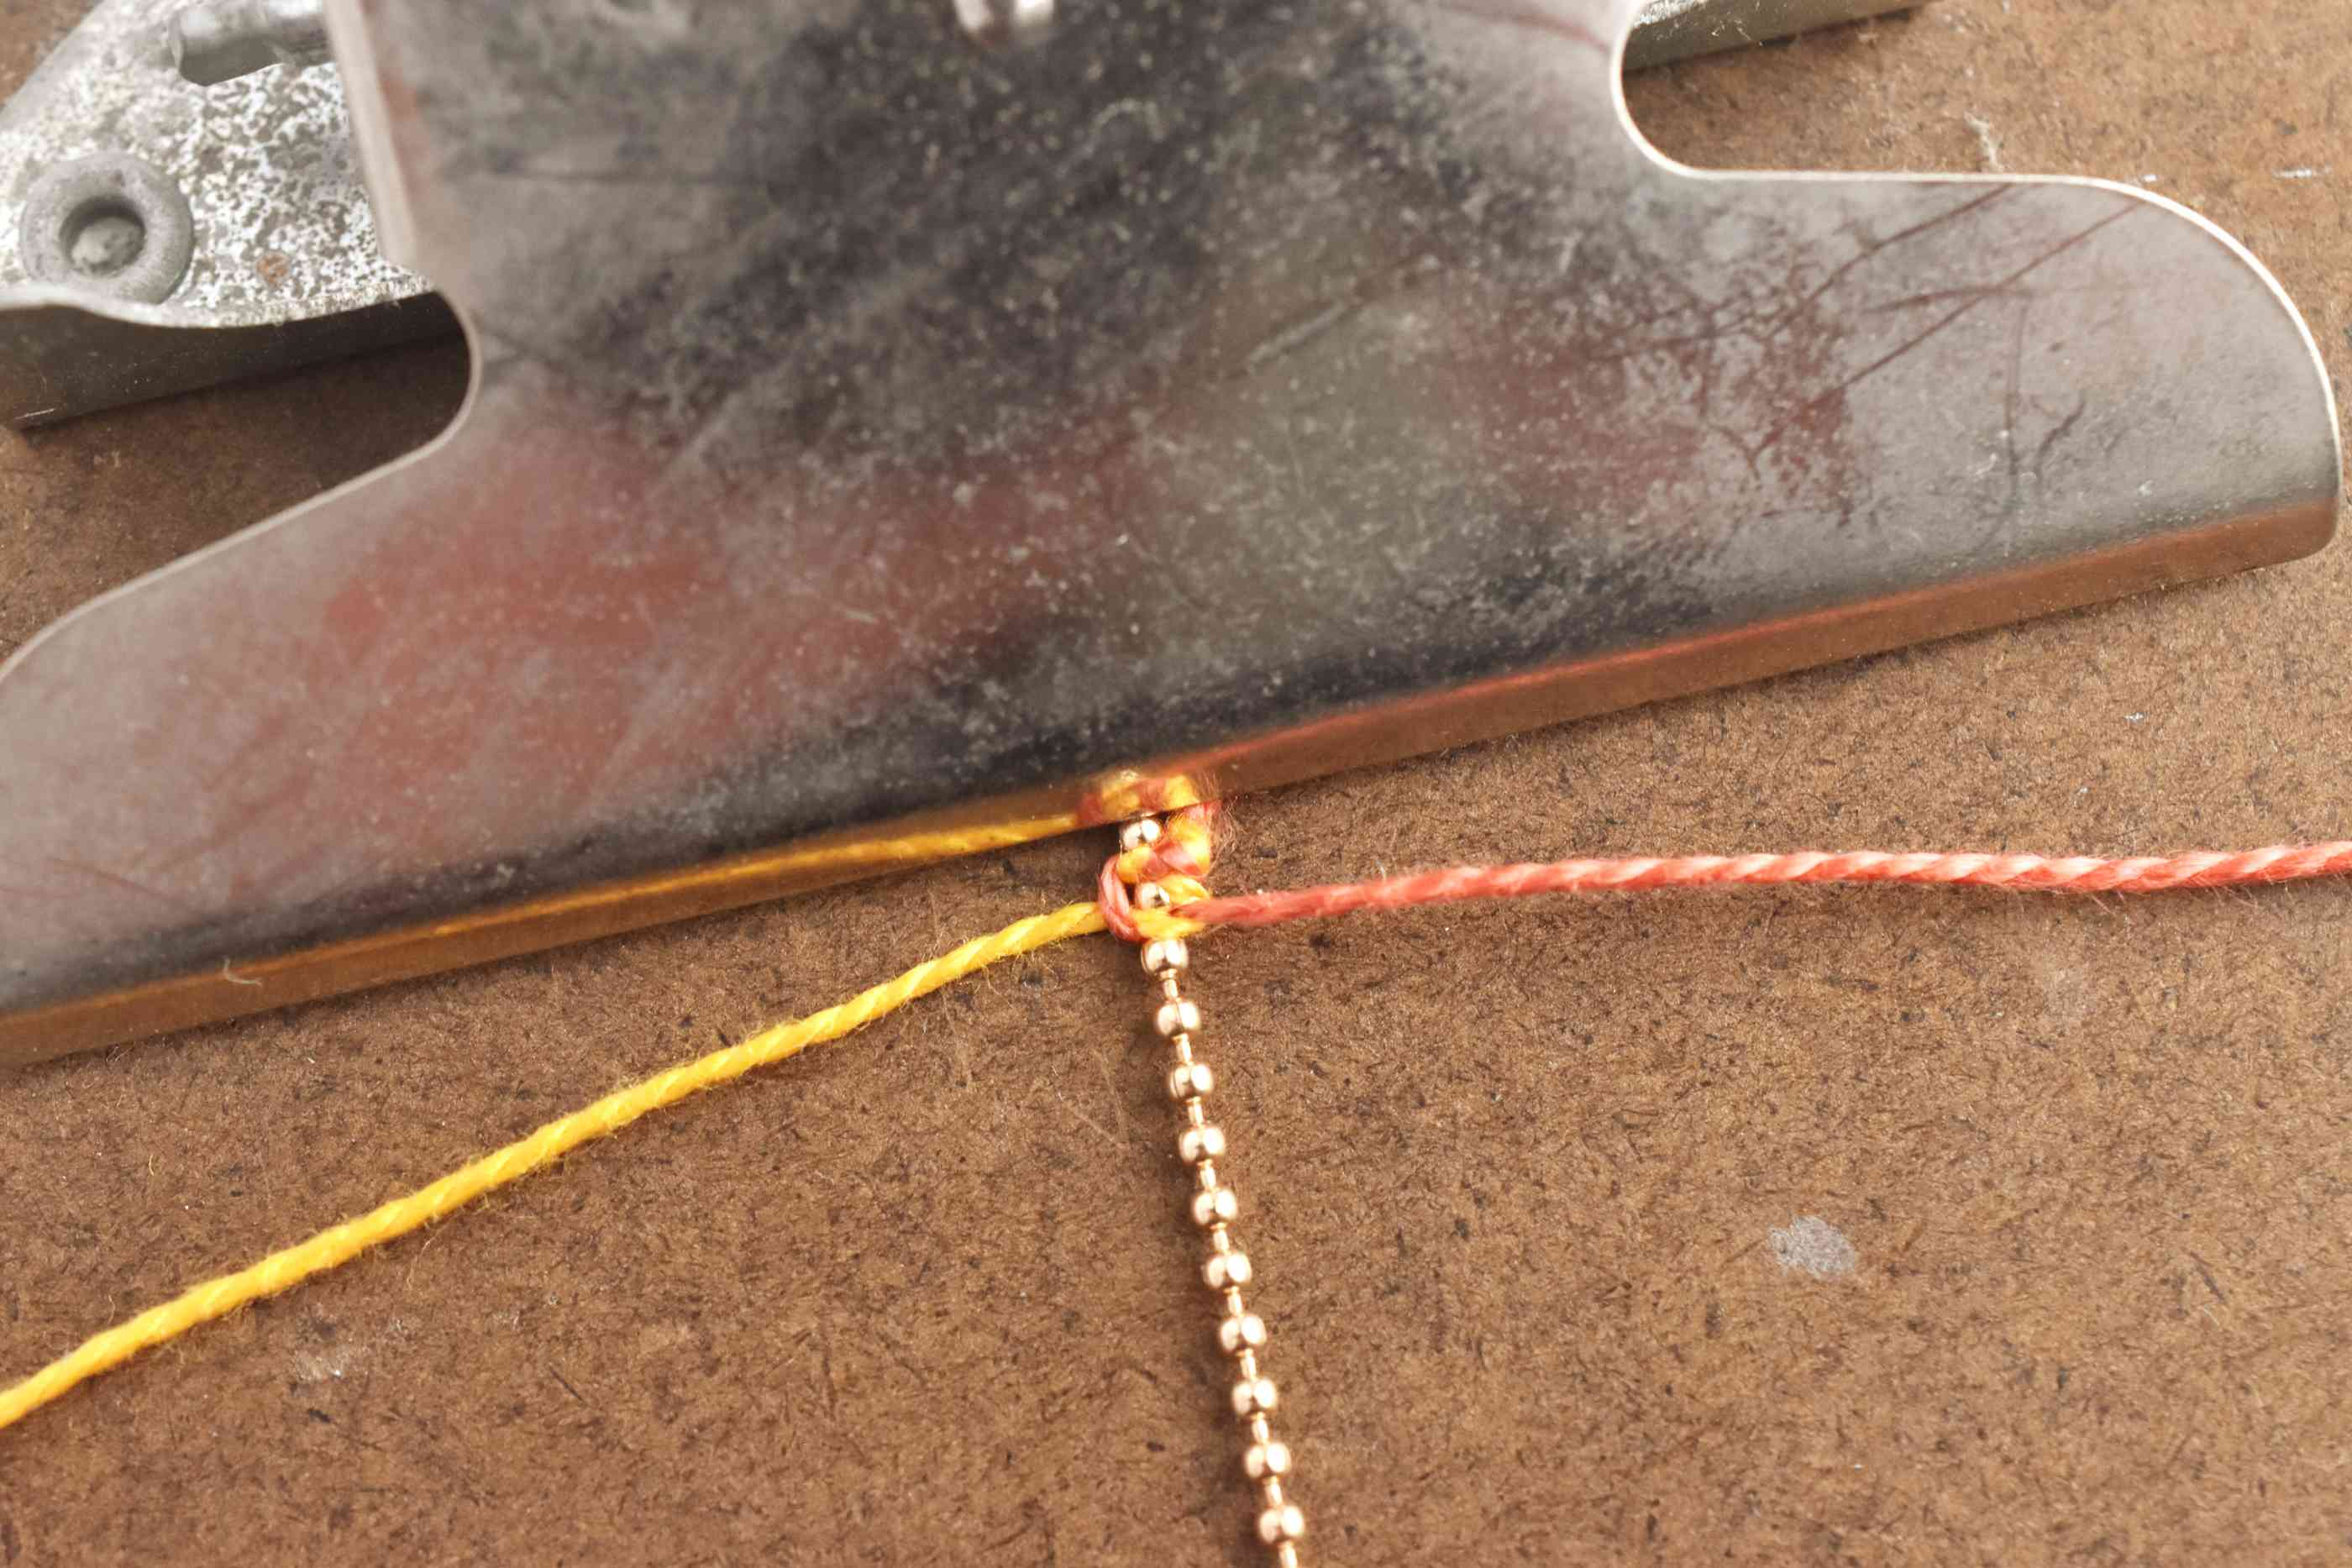 Pull the Knot Tight Around the Chain